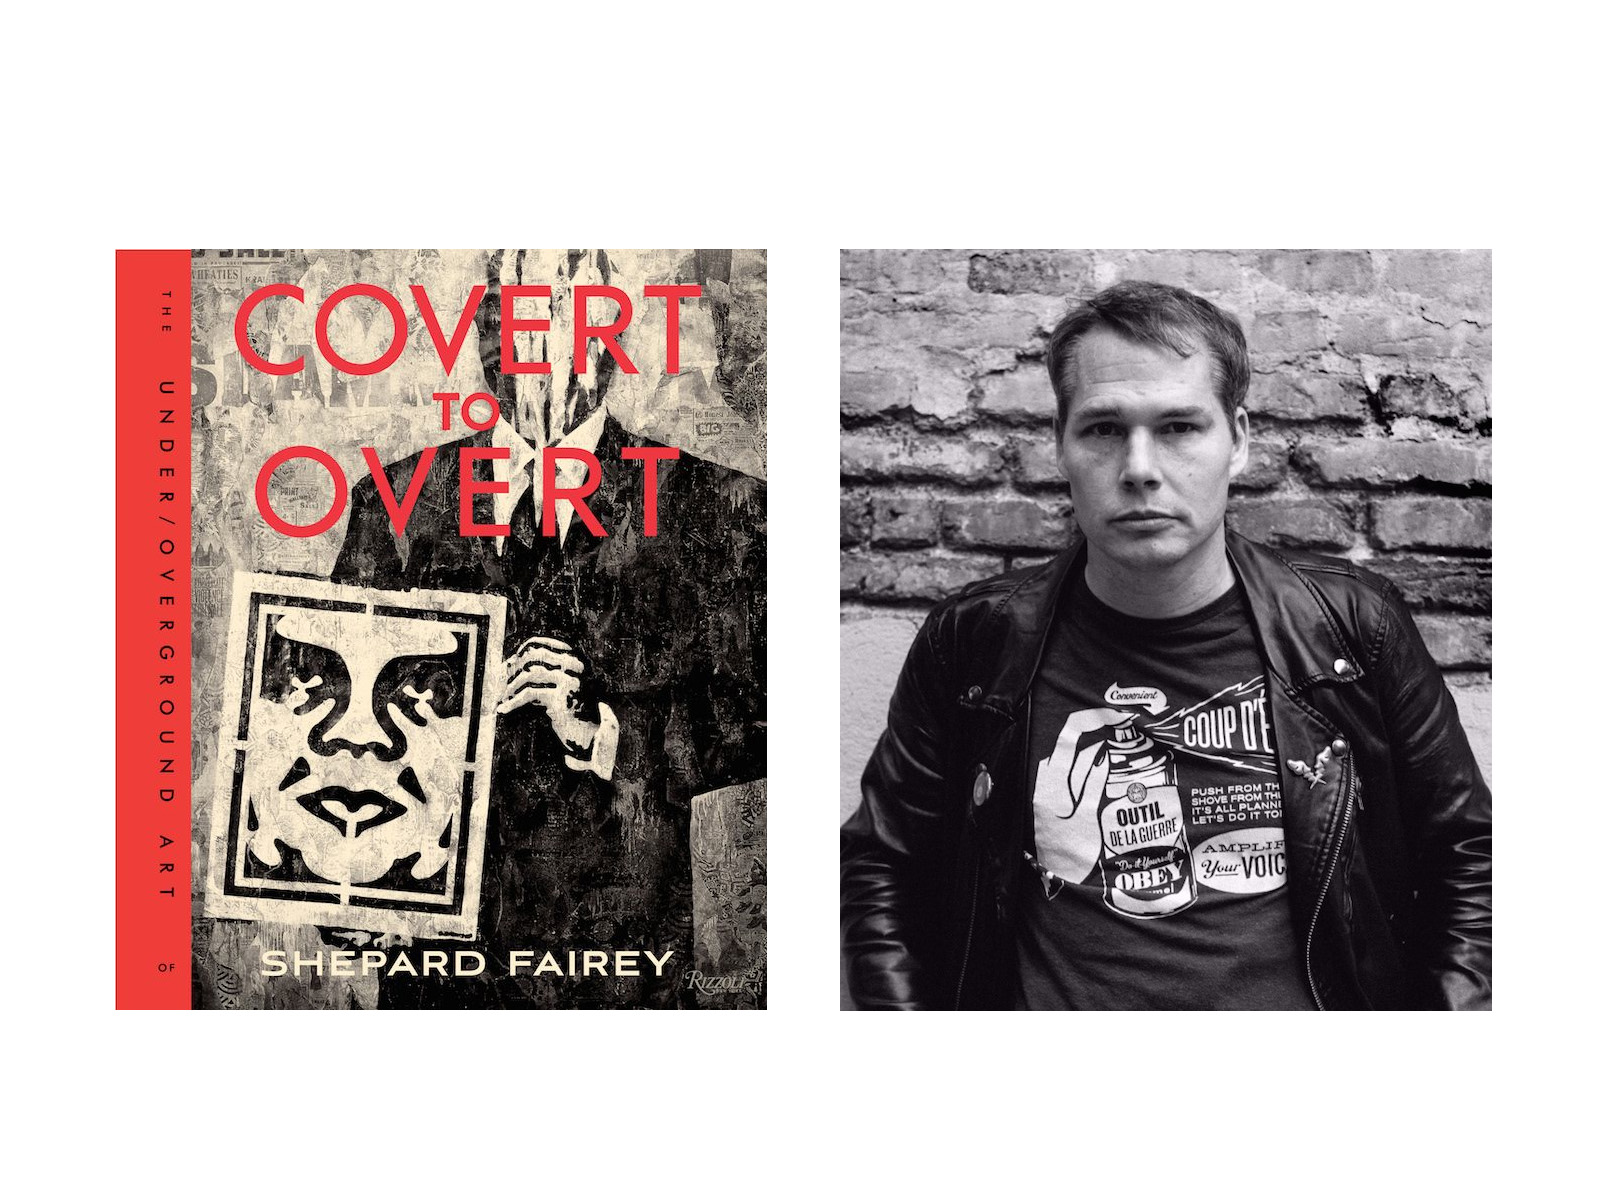 COVERT TO OVERT: The Under/Overground Art of Shepard Fairley